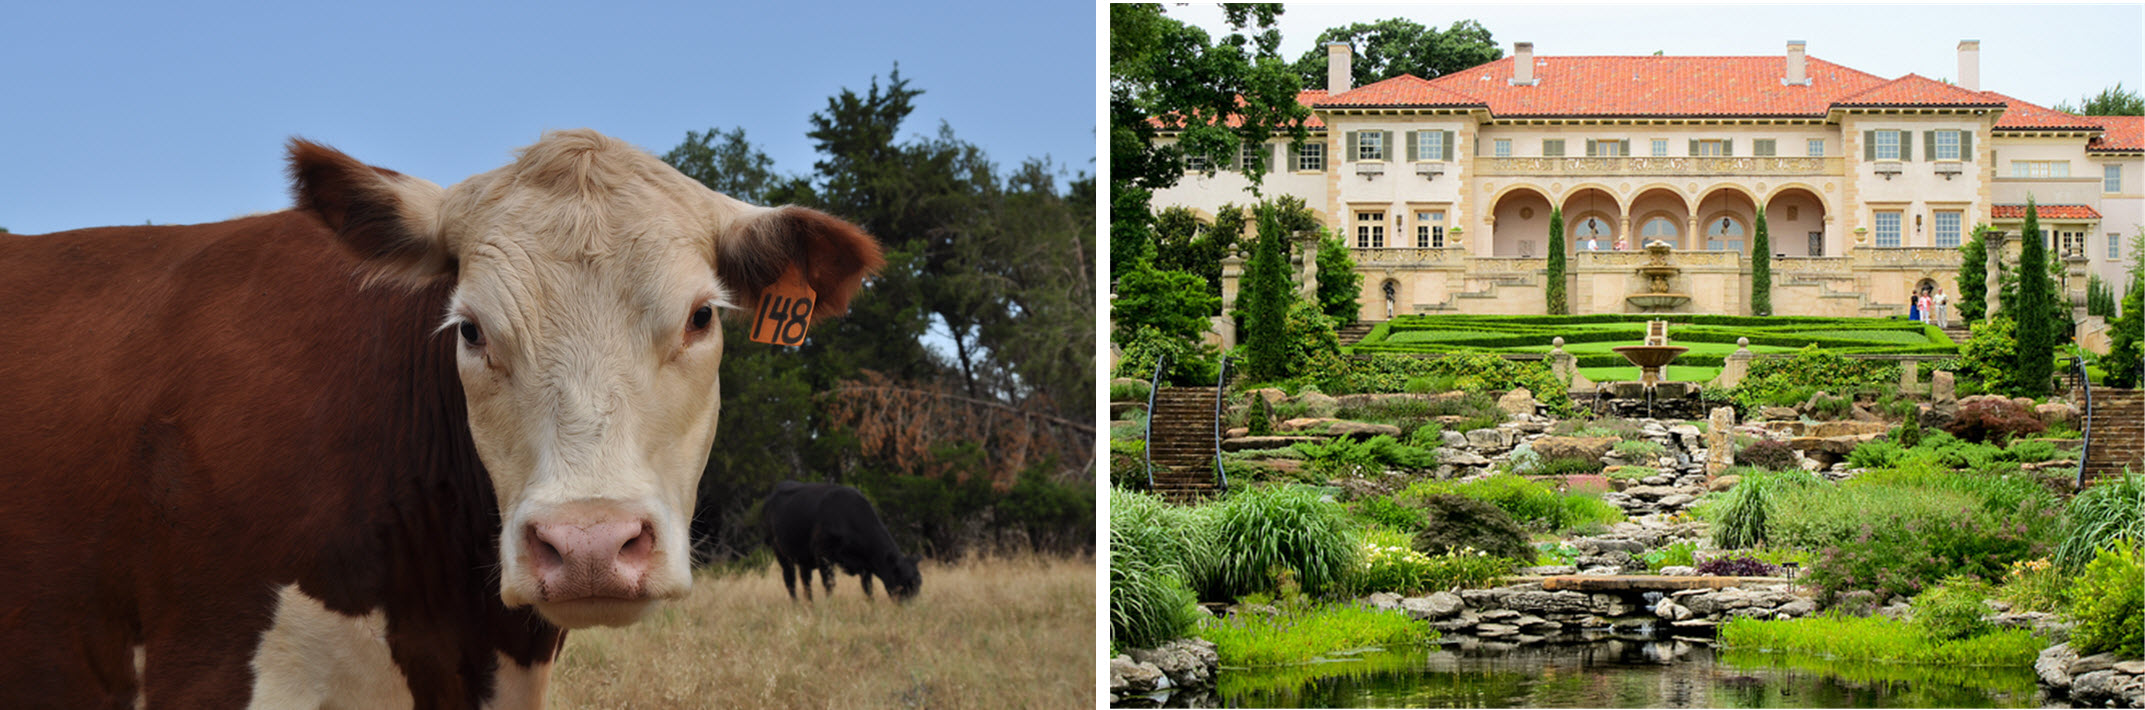 Which of the above best represents Oklahoma? Answer: Both.(Photo of cattle by Sarah Kobos and photo of Tulsa's Philbrook Museum of Art by Eric Wittman)